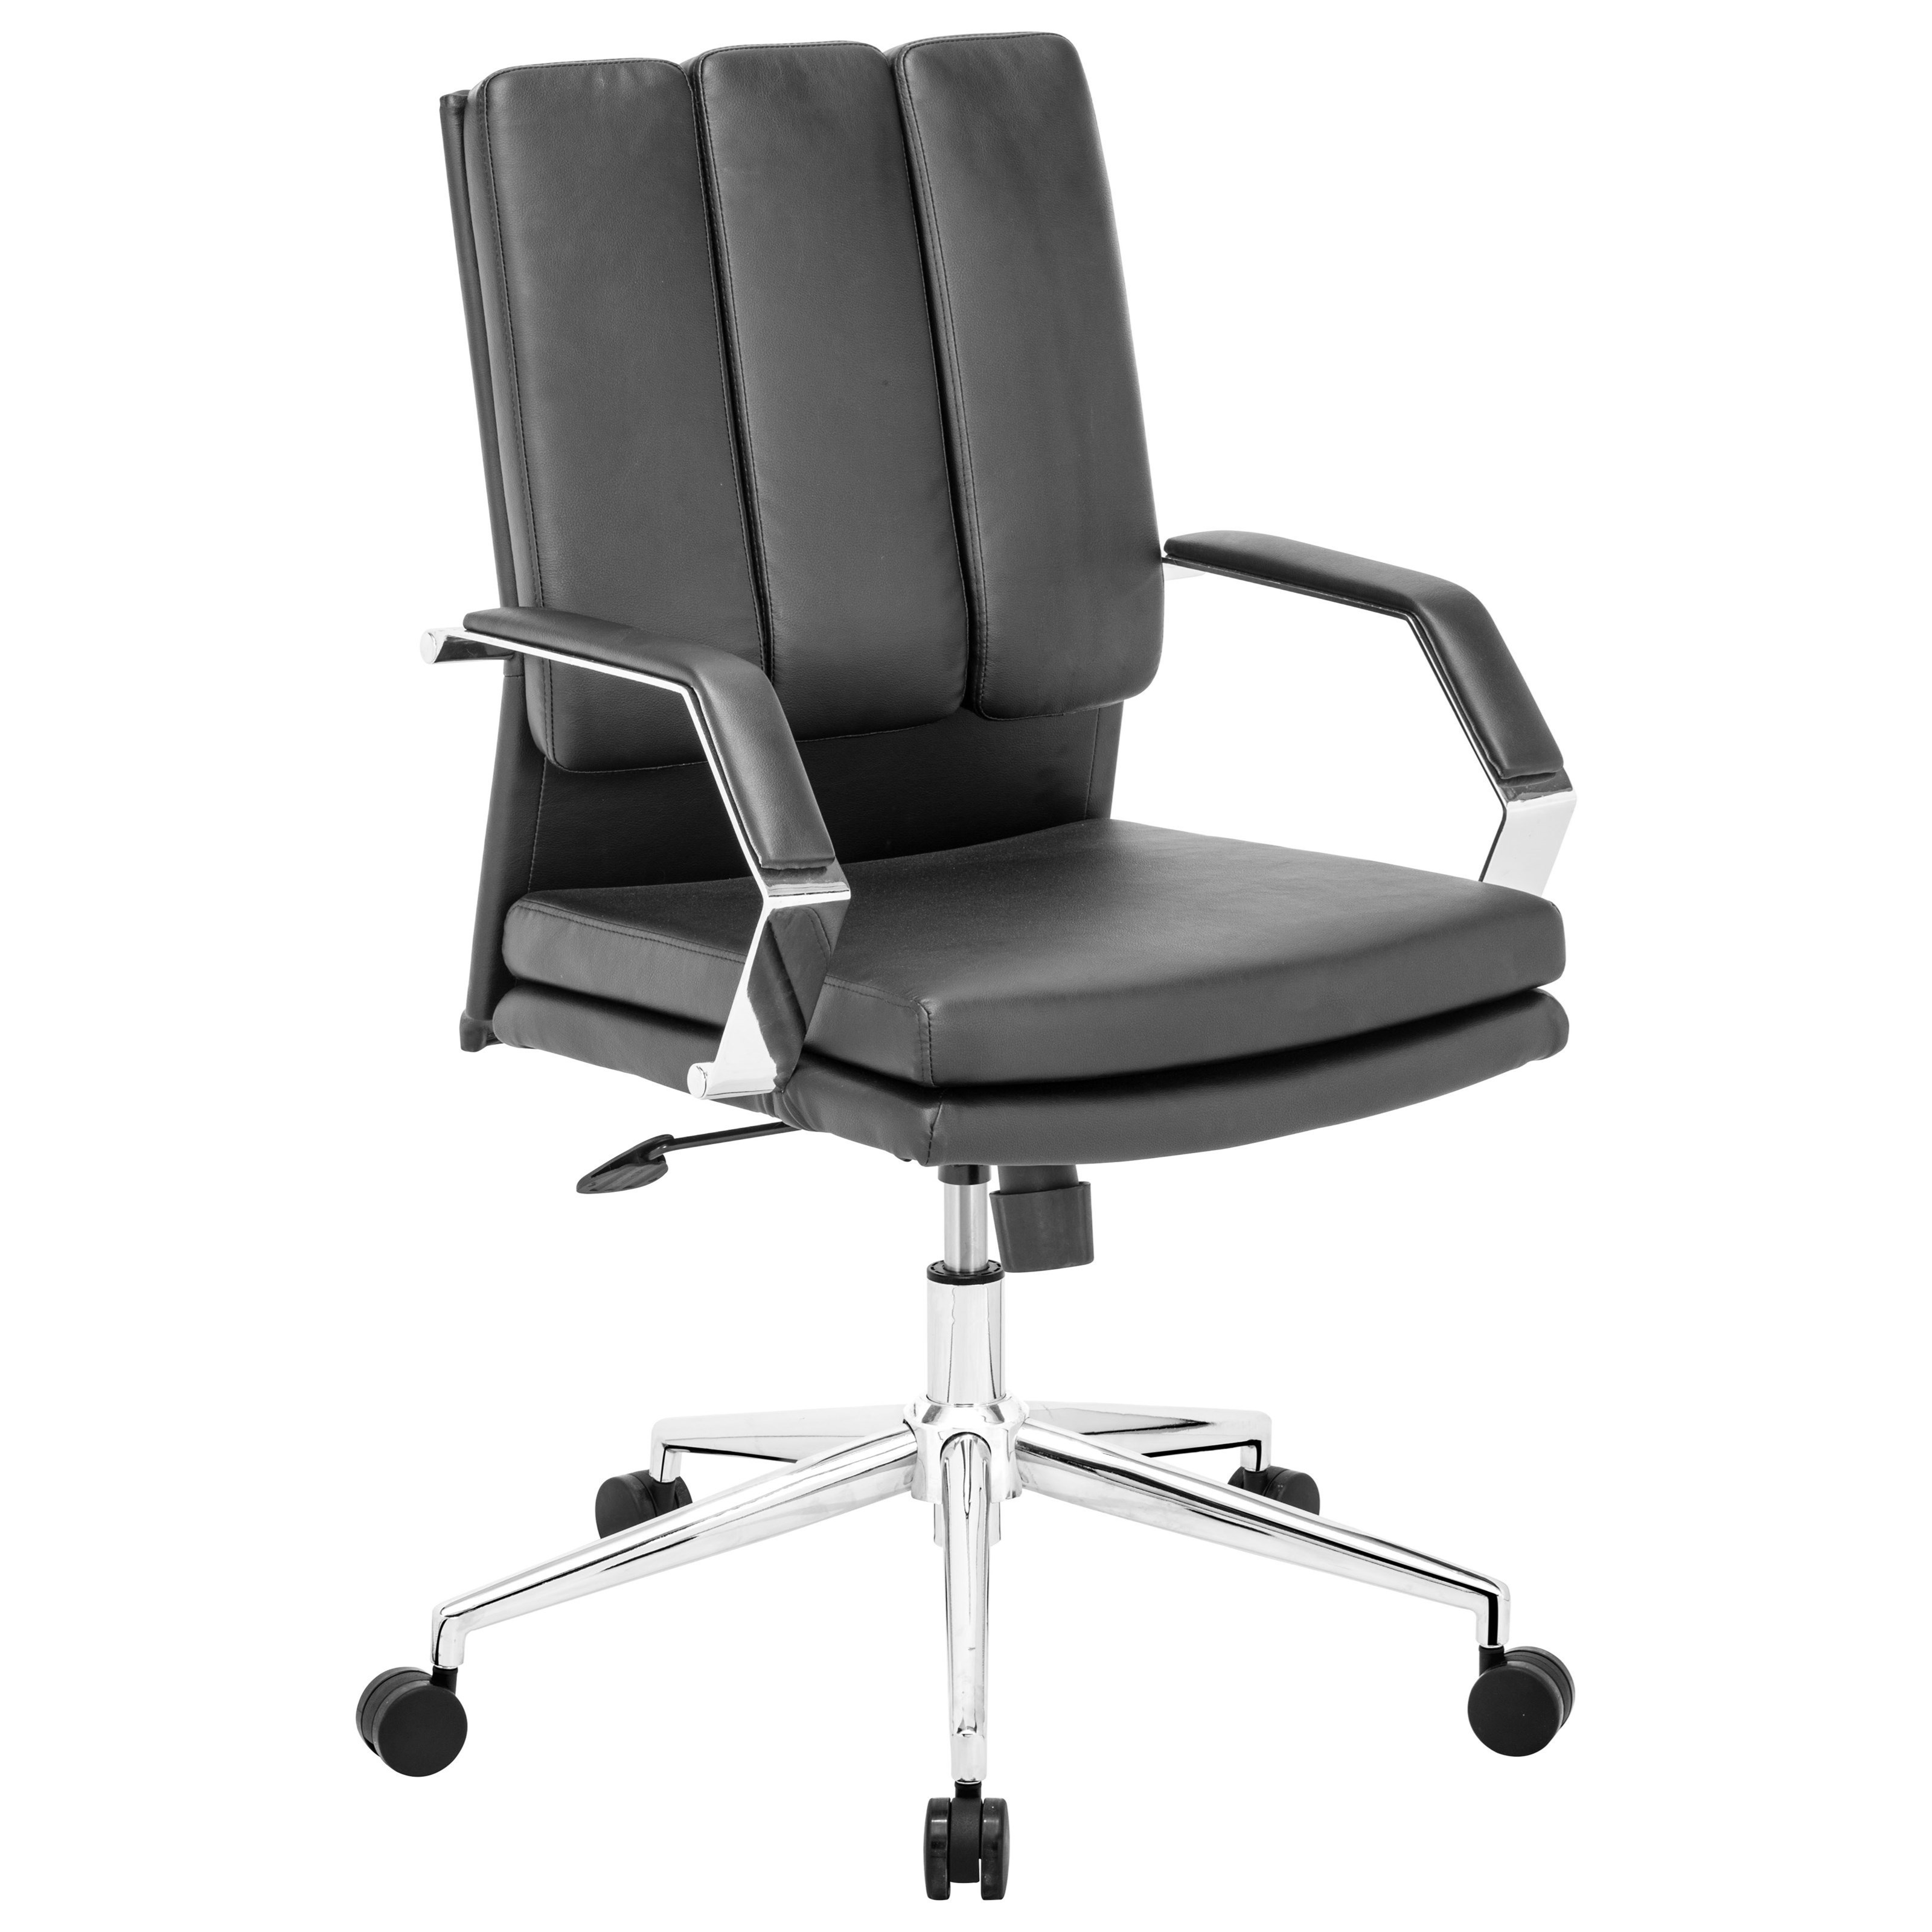 Zuo Director Pro Office Chair Item Number 205324